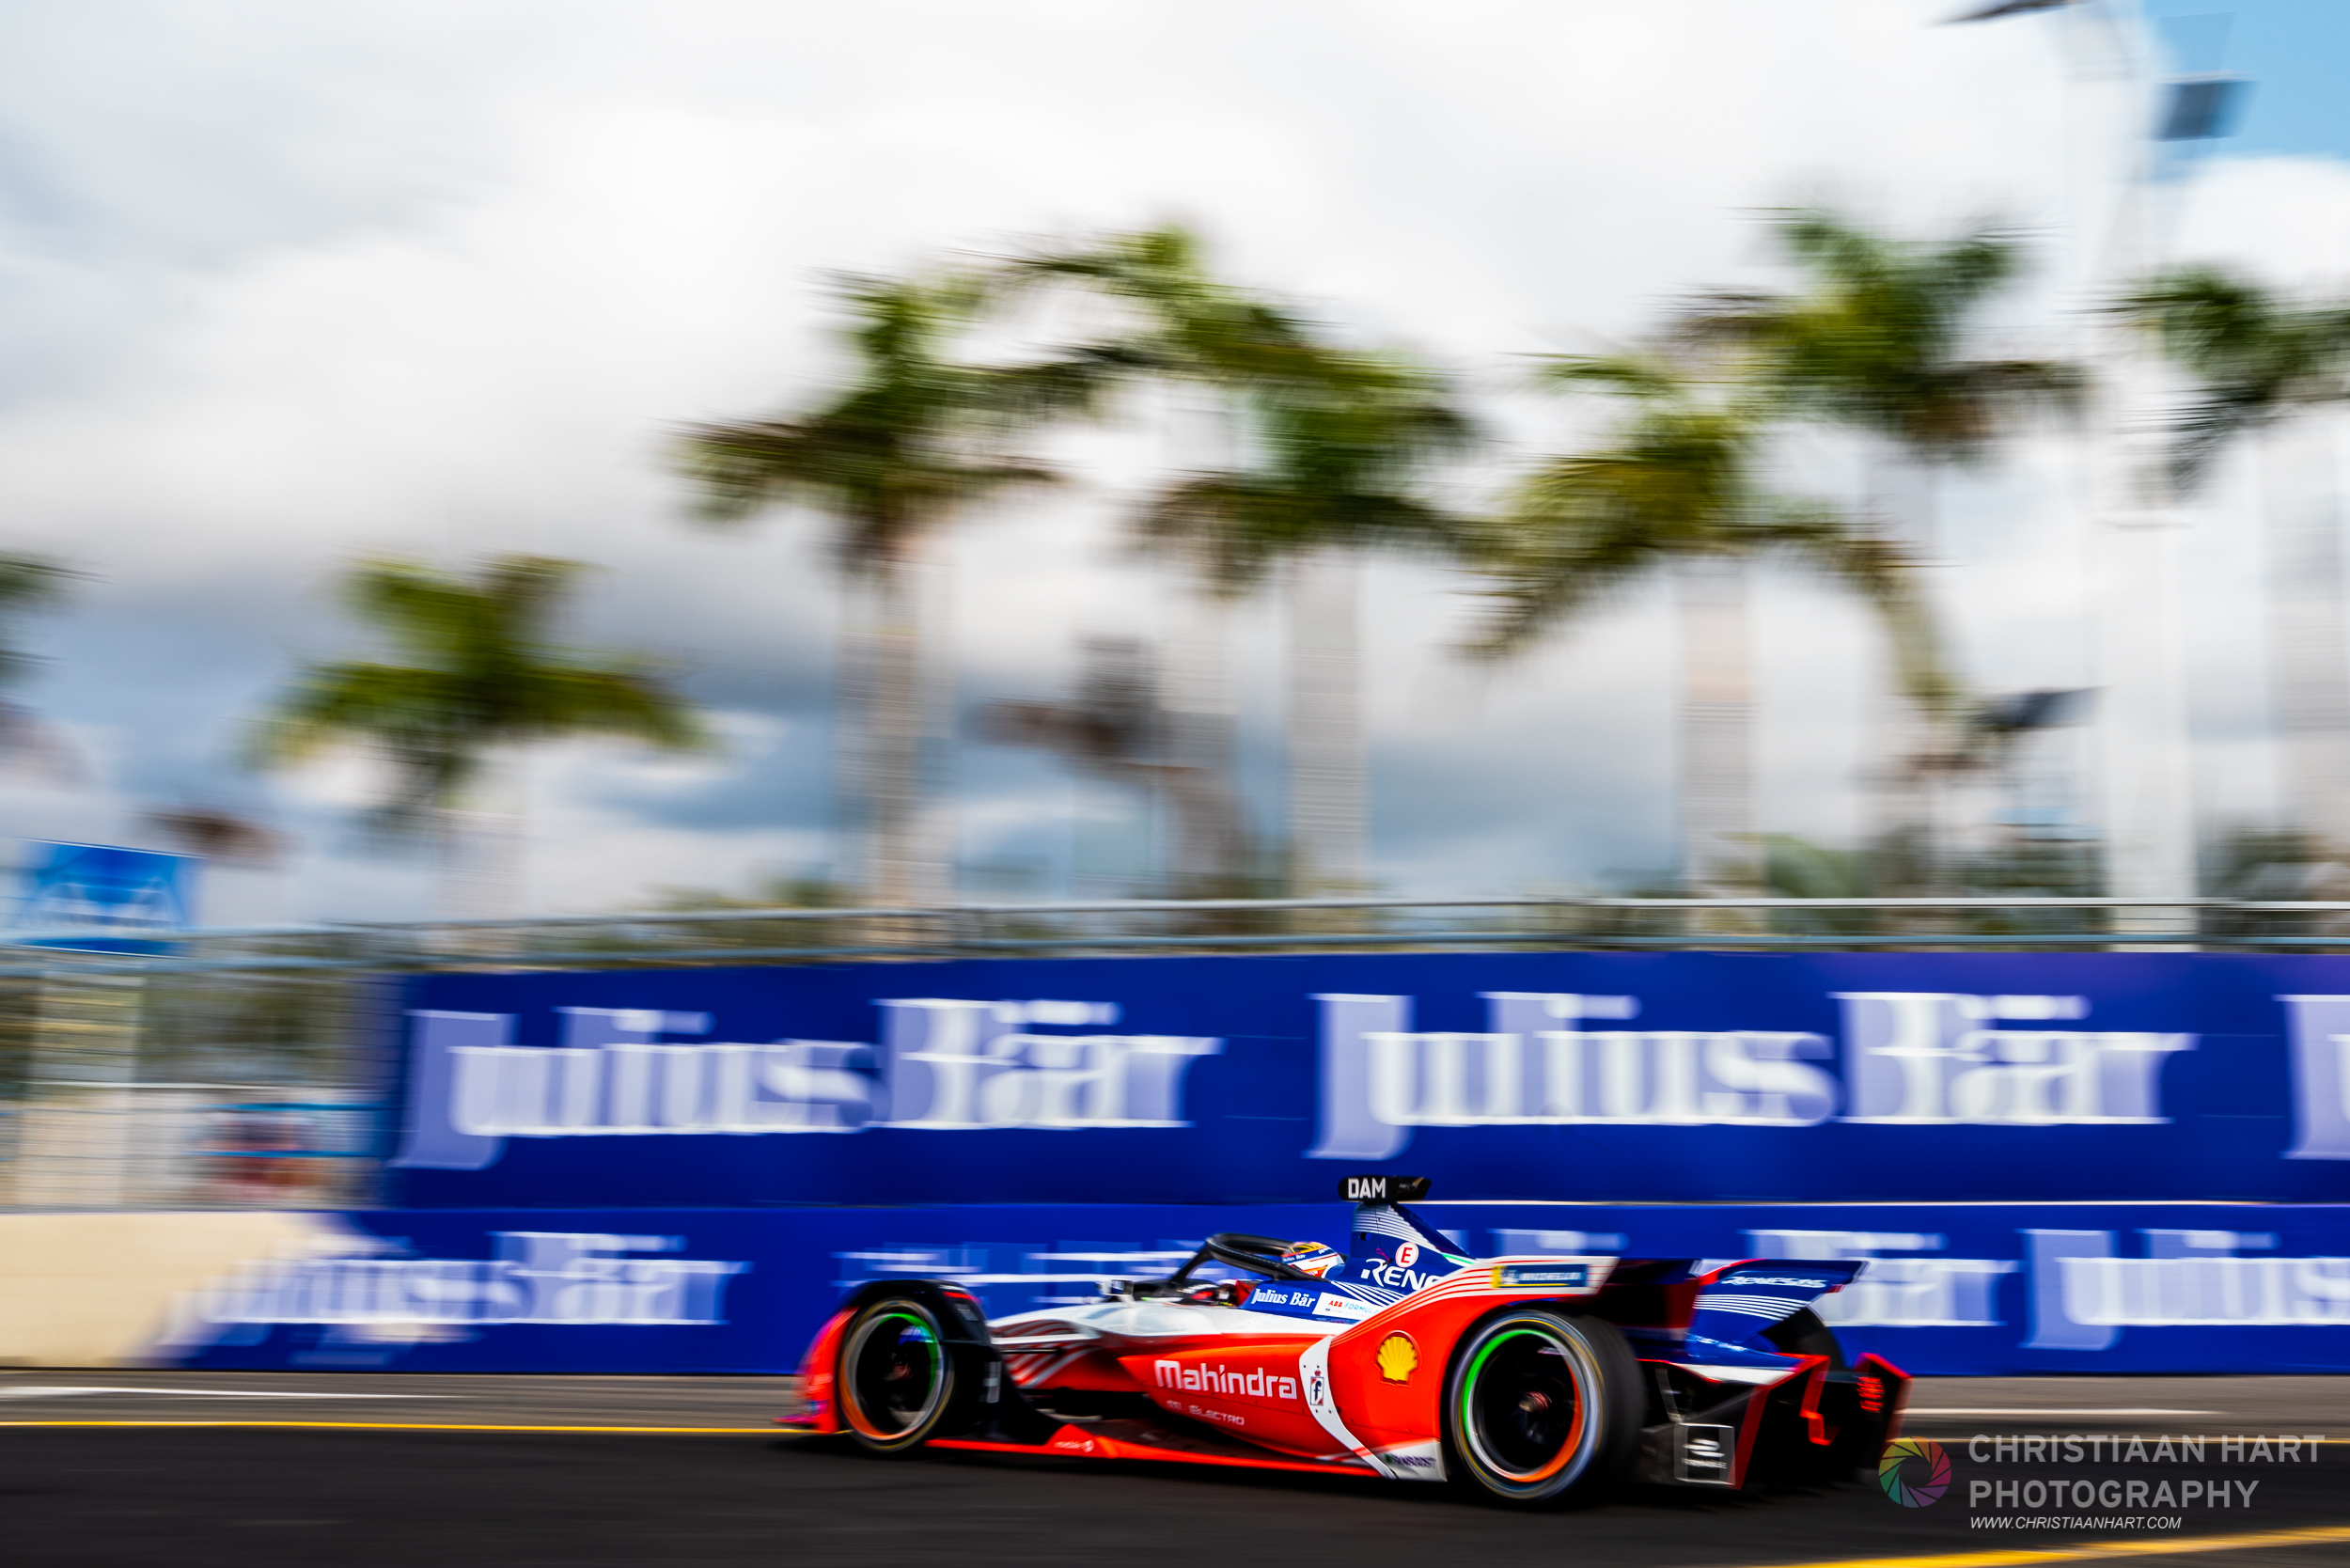 Julius Baer, Global Sponsor for Formula E